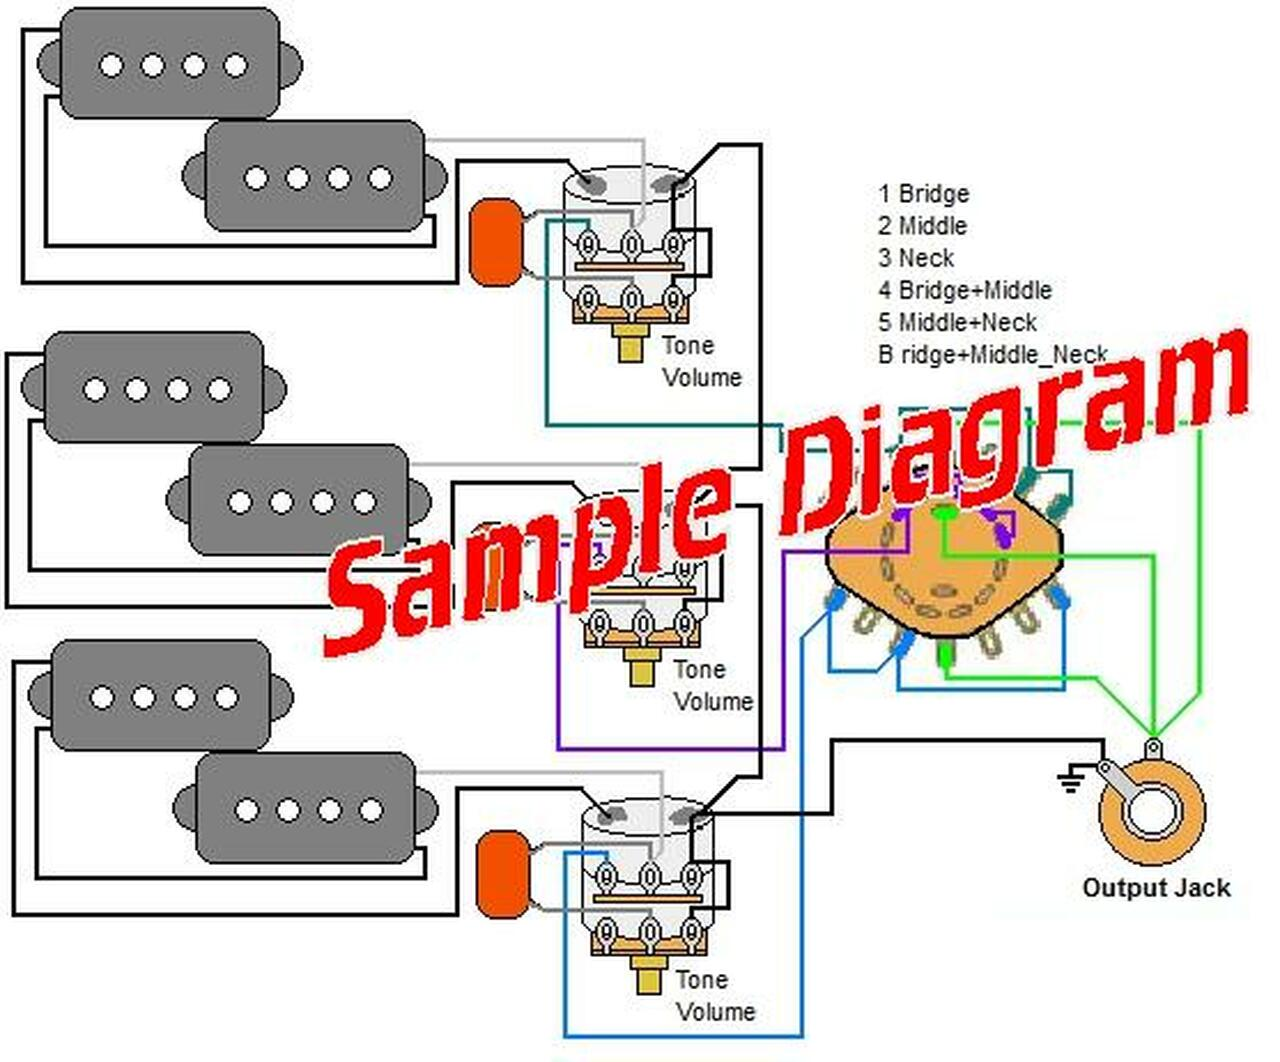 3 Pickup Custom Designed Guitar Wiring Diagrams | Bass 2 Pick Up Guitar Wiring Diagram |  | Guitar Electronics